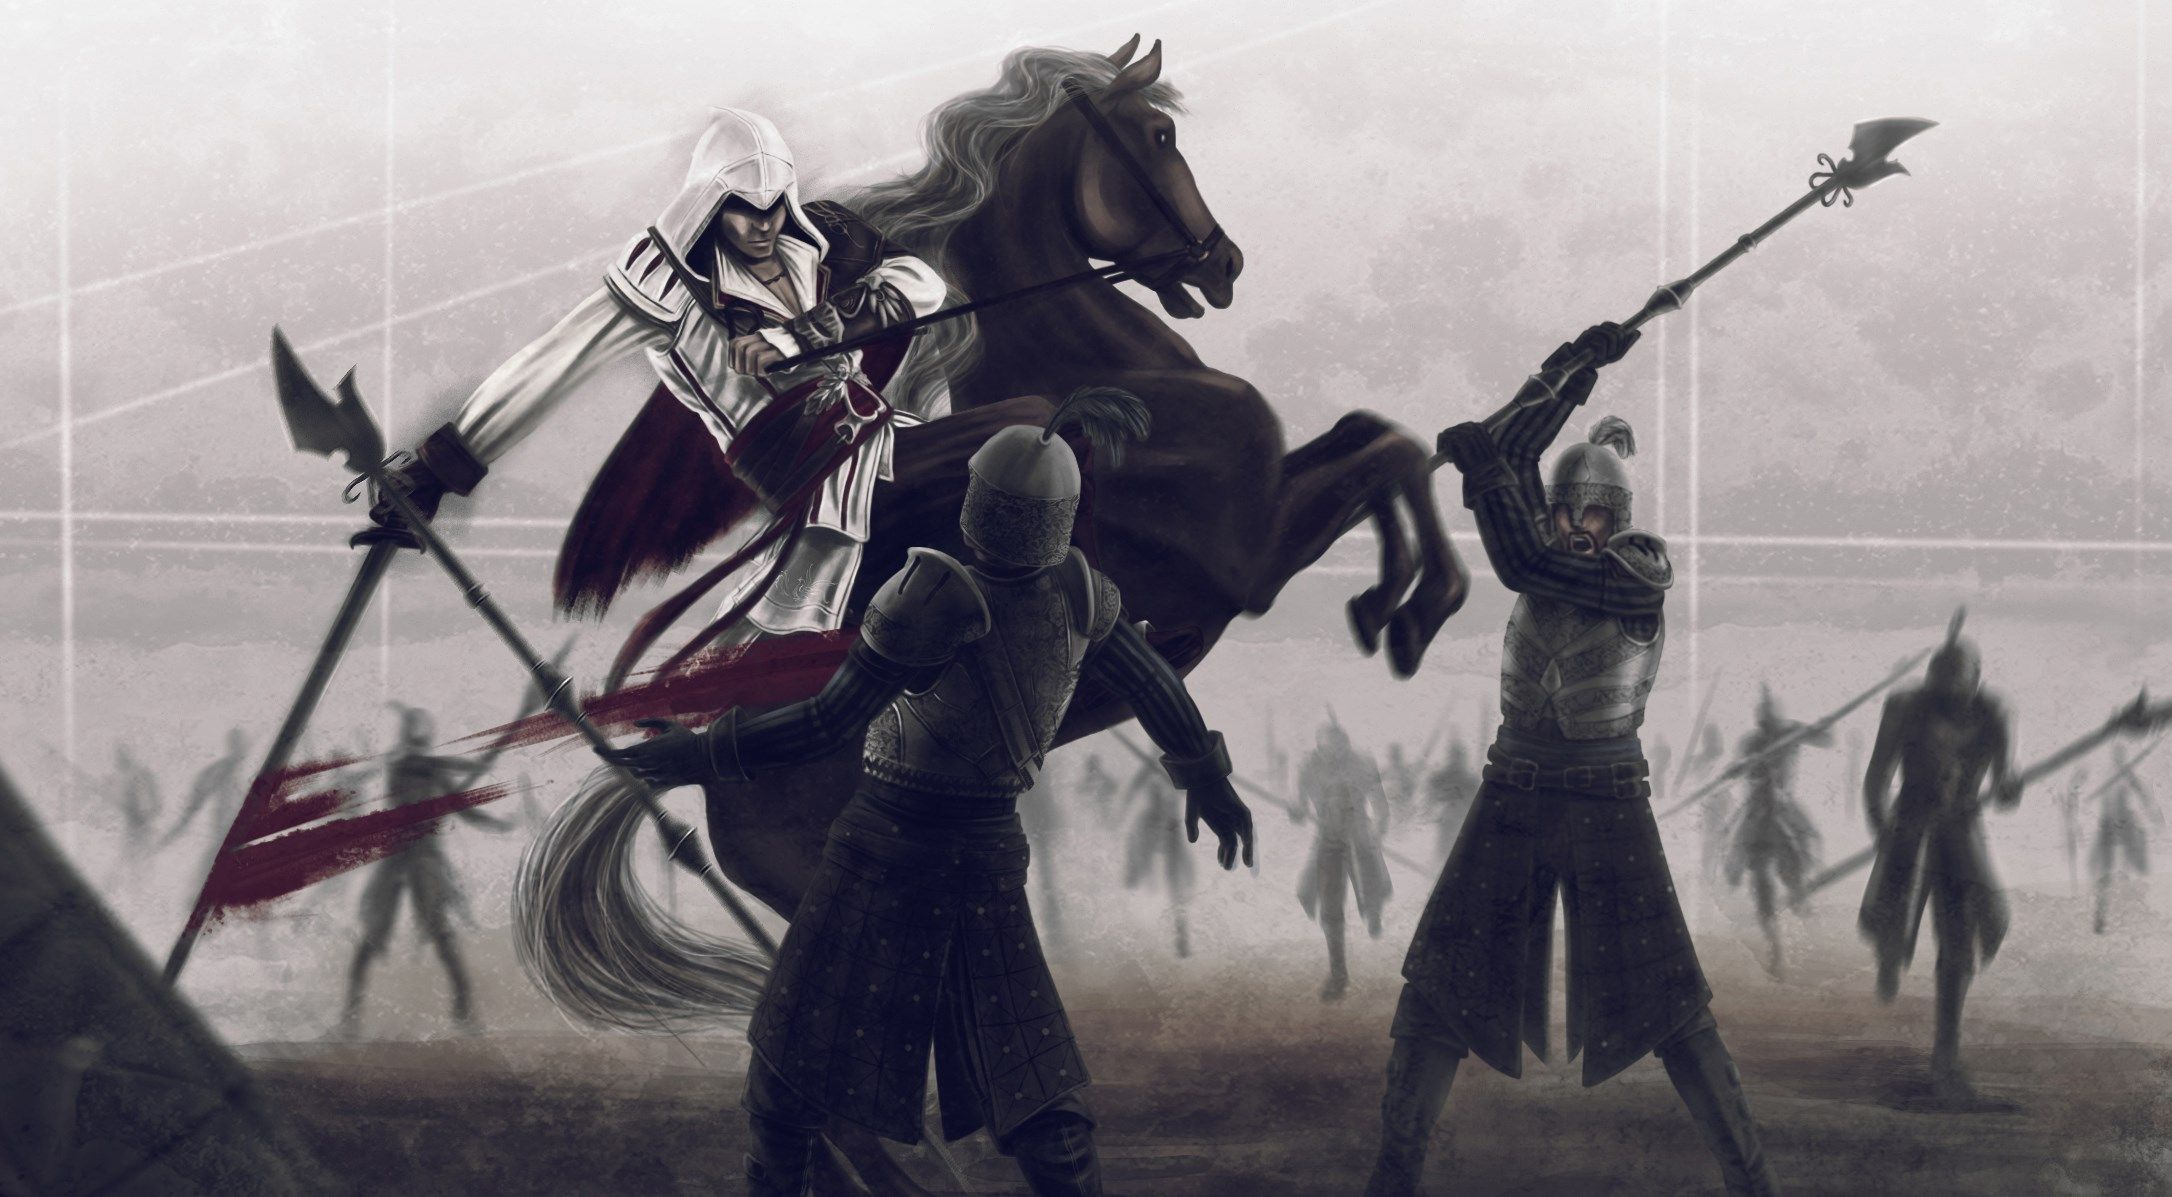 Must see Wallpaper Horse Assassin'S Creed - 627af28afaaf5e560903034ff9832864  Graphic_289864.jpg